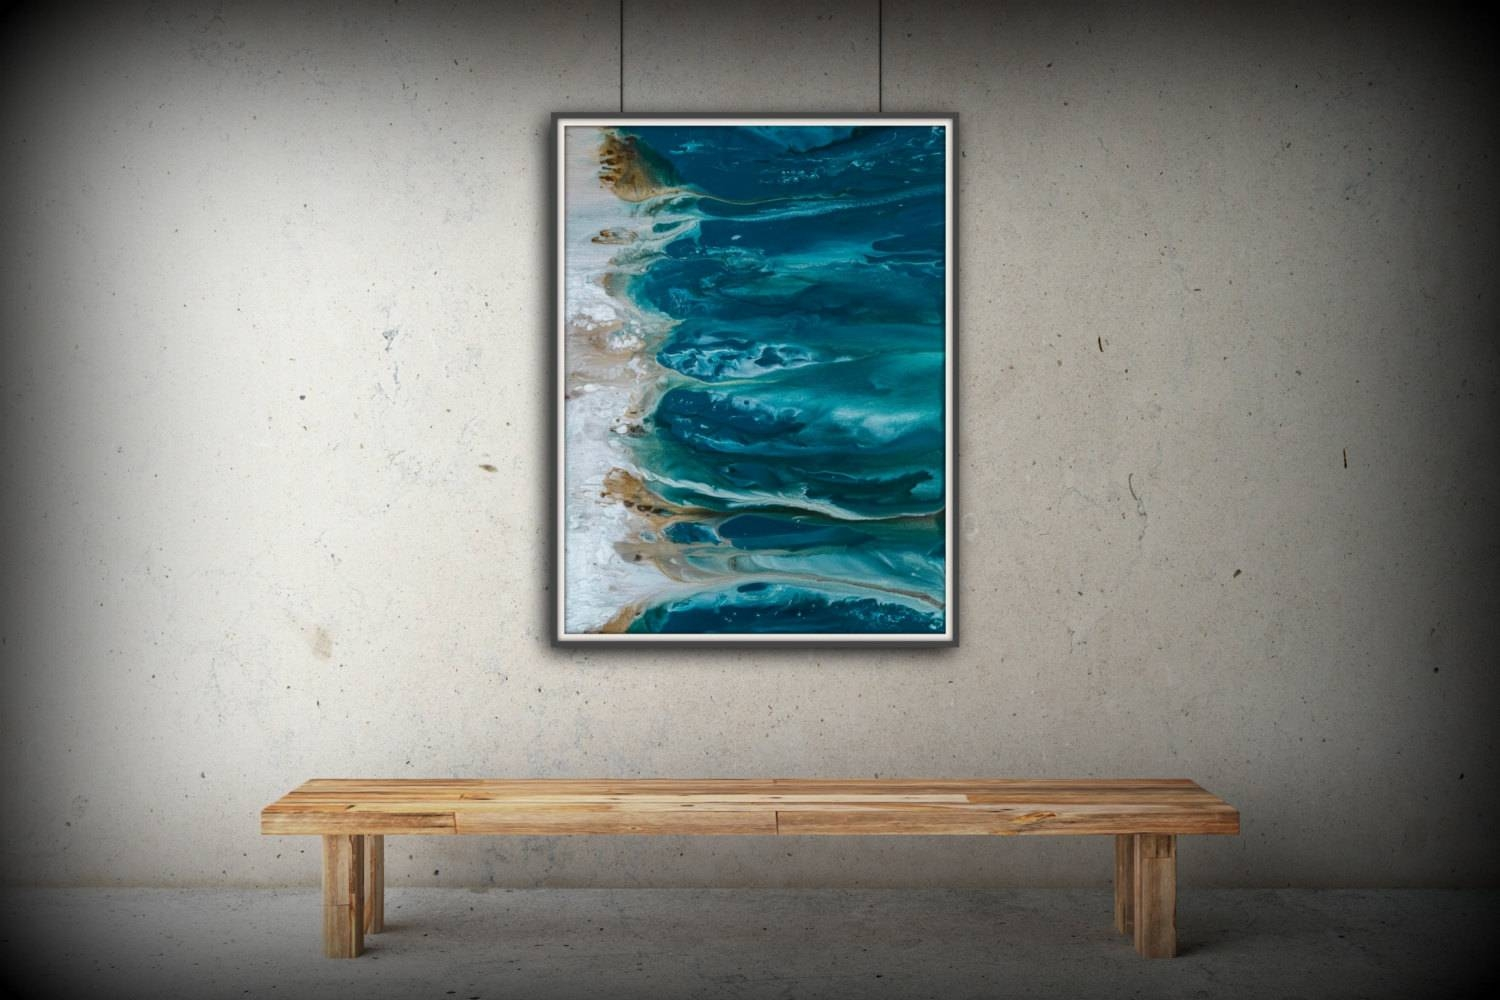 Abstract Art Blue Wall Art Coastal Landscape Giclee Large With Regard To Latest Large Coastal Wall Art (View 5 of 20)